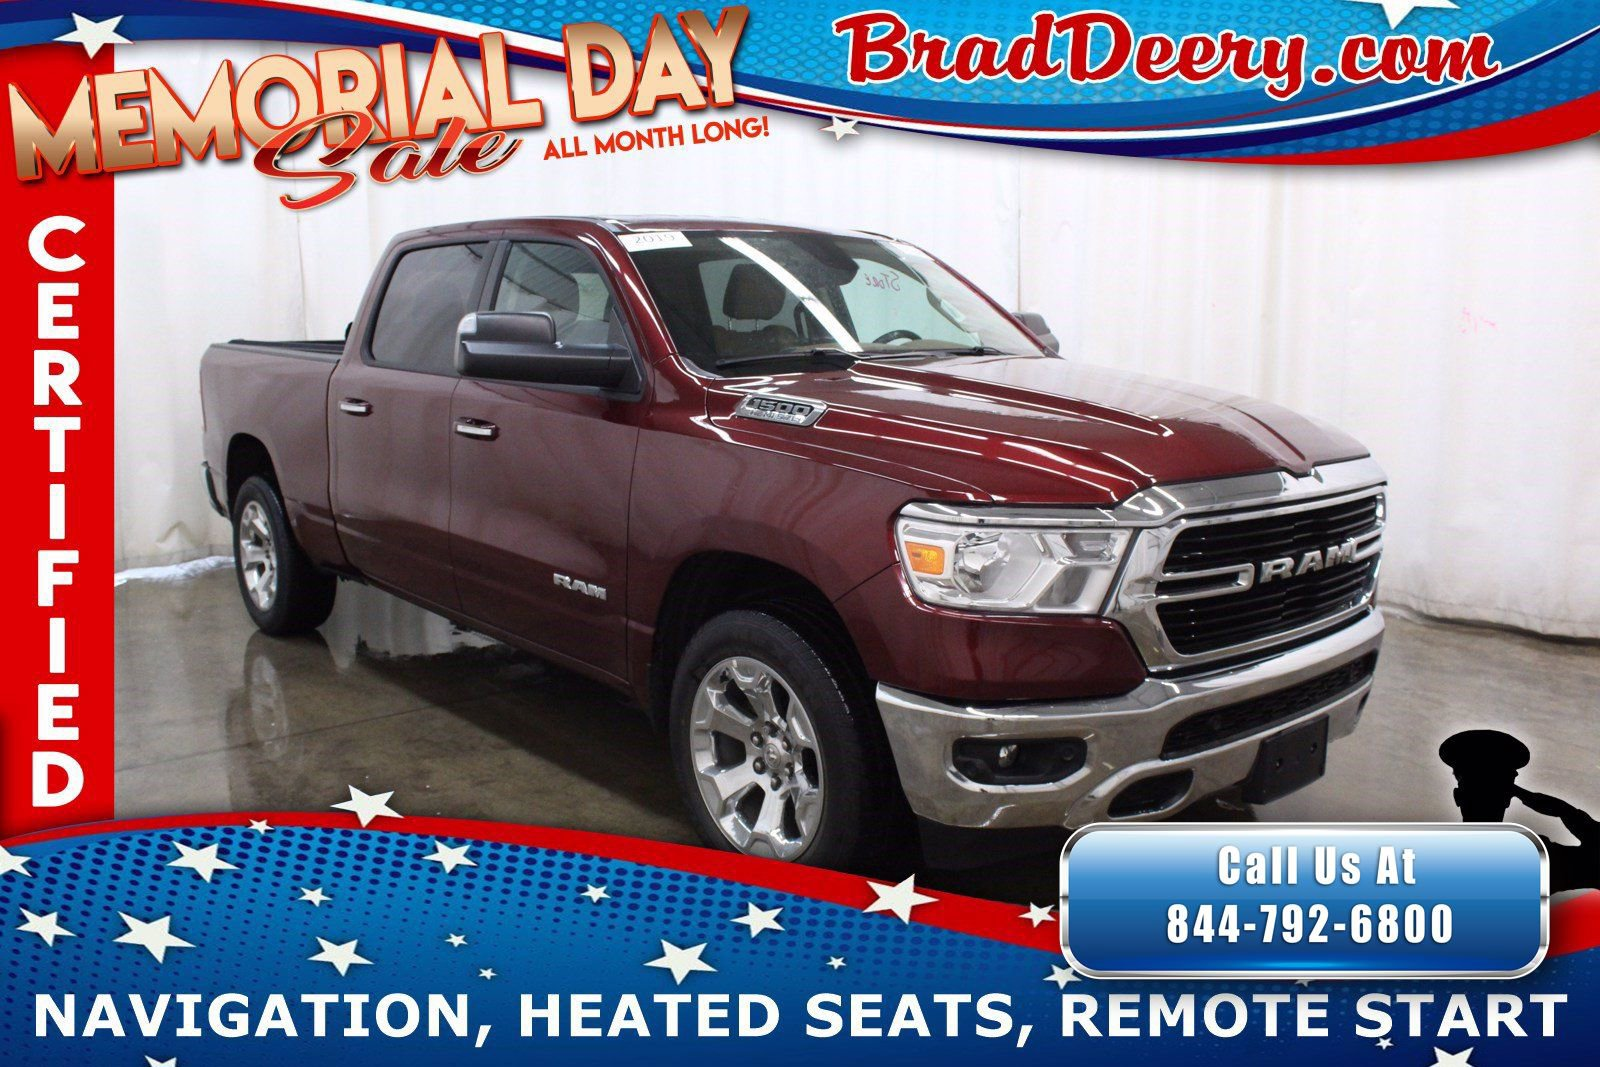 2019 Ram 1500 Big Horn Crew Cab 4x4   **RAM CERTIFIED** w/ Navigation, Heated Seats, Remote Start & Level 2 Group